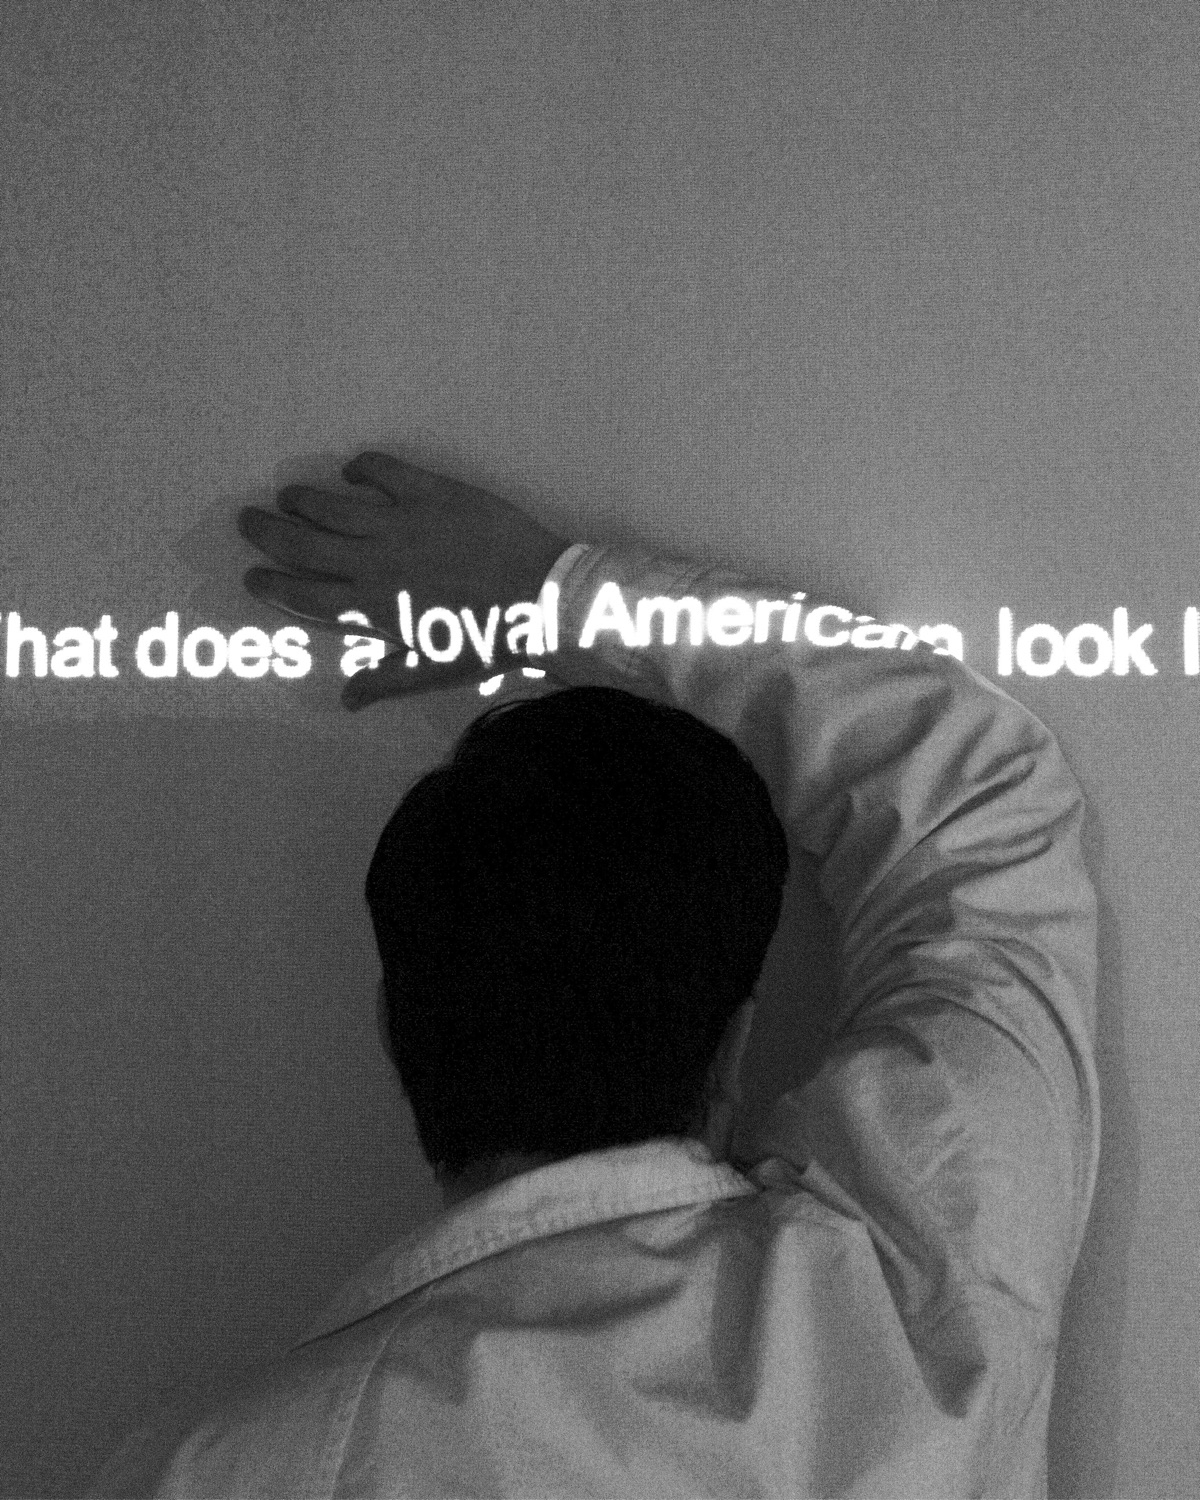 Hands Wall. Quotes: loyal Ameri - chrispereira | ello